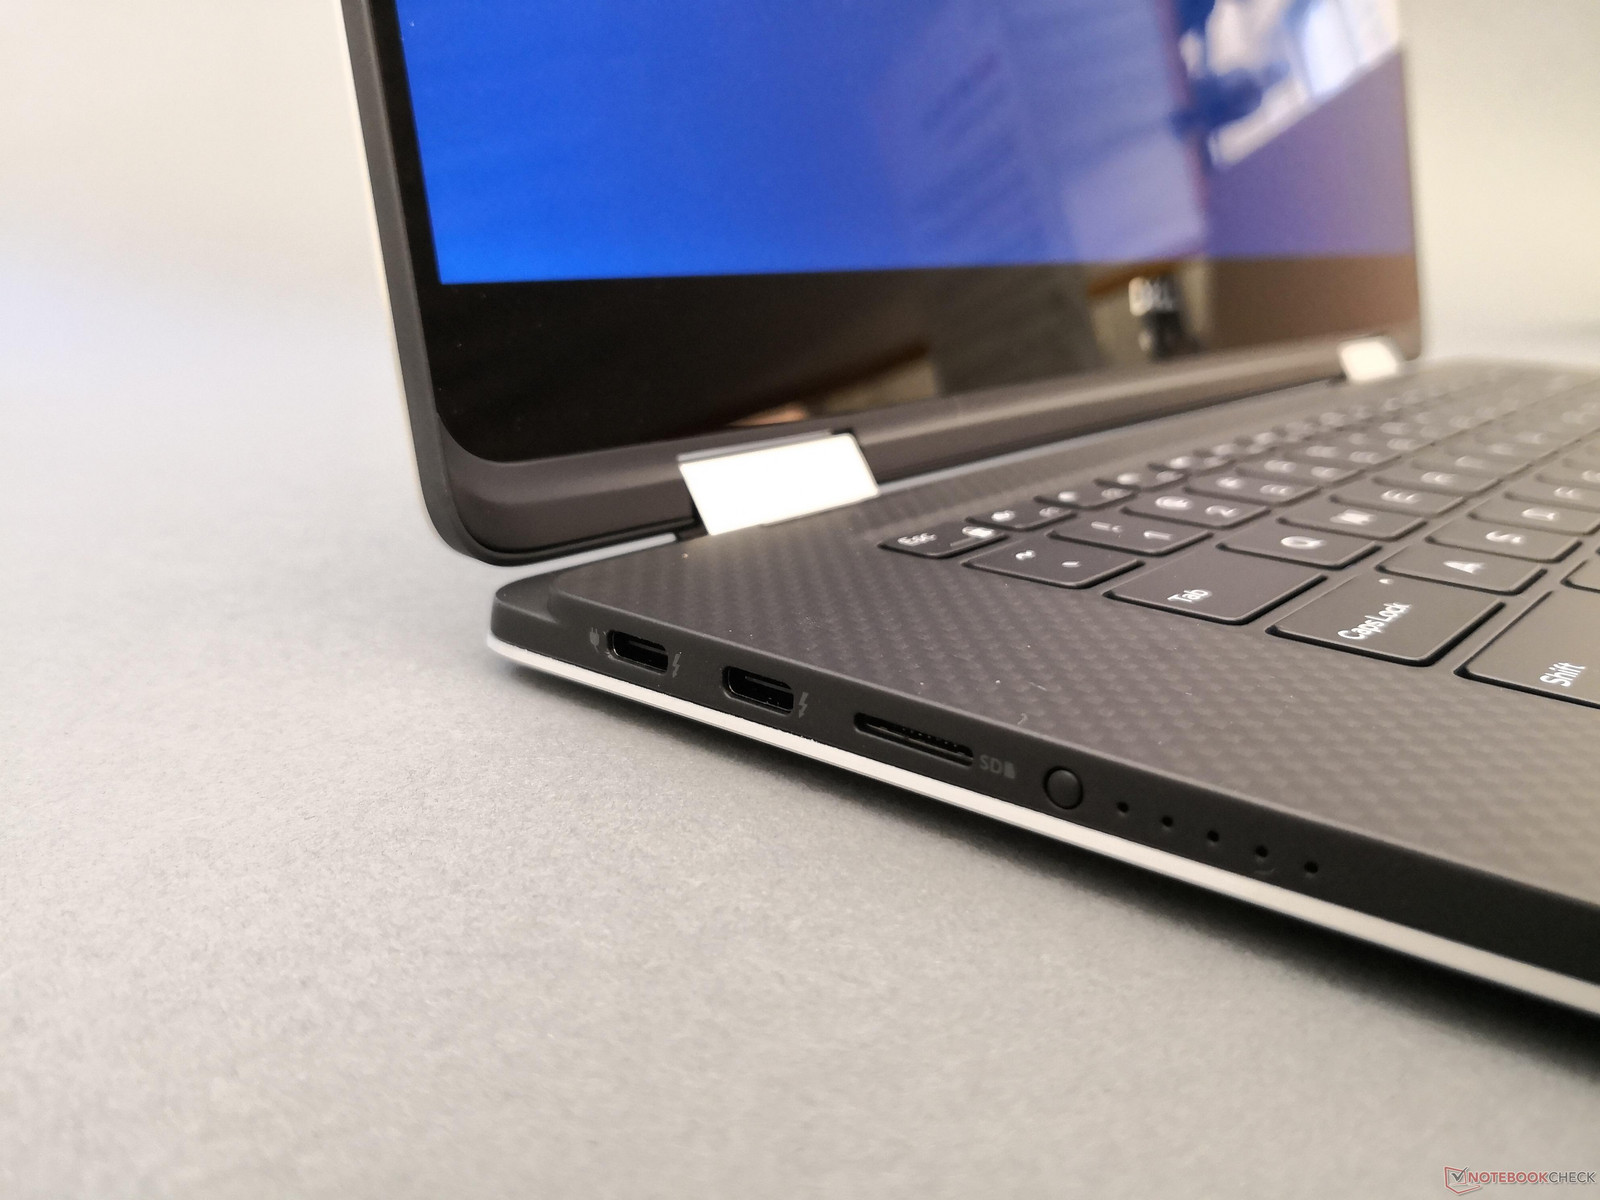 The Dell XPS 15 2-in-1 is real — and it sure runs hot